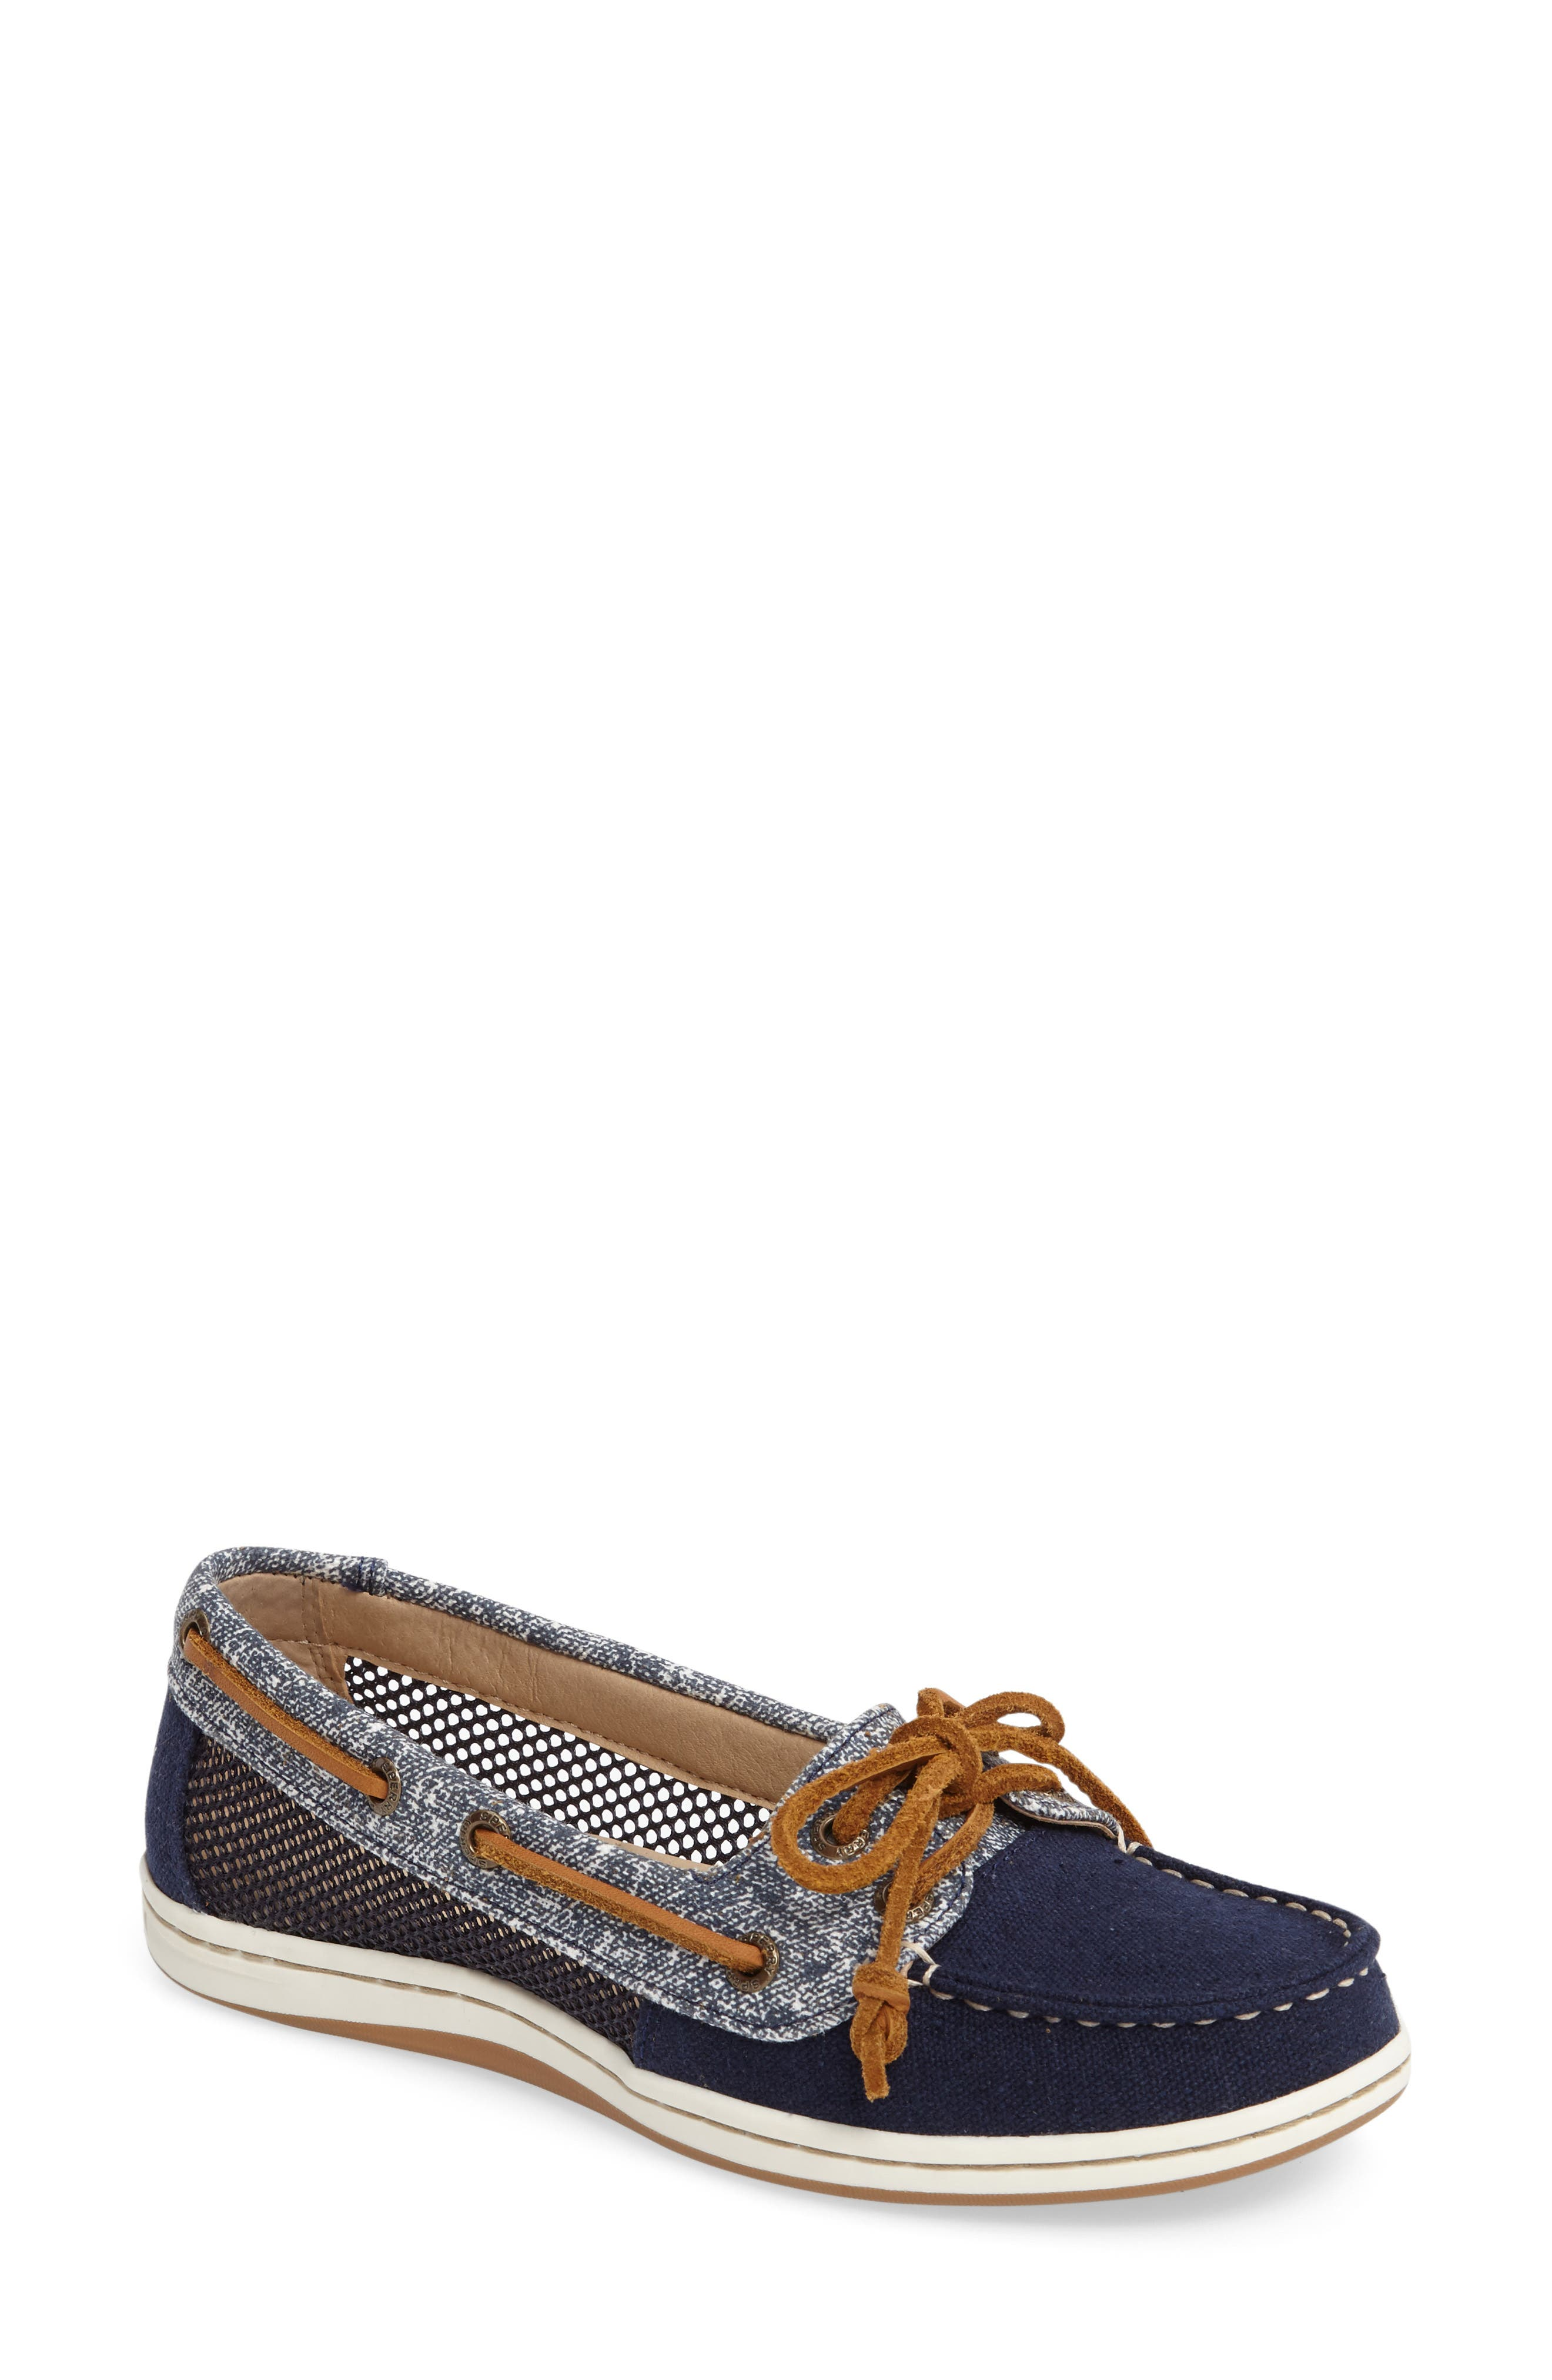 Sperry 'Firefish' Boat Shoe (Women)